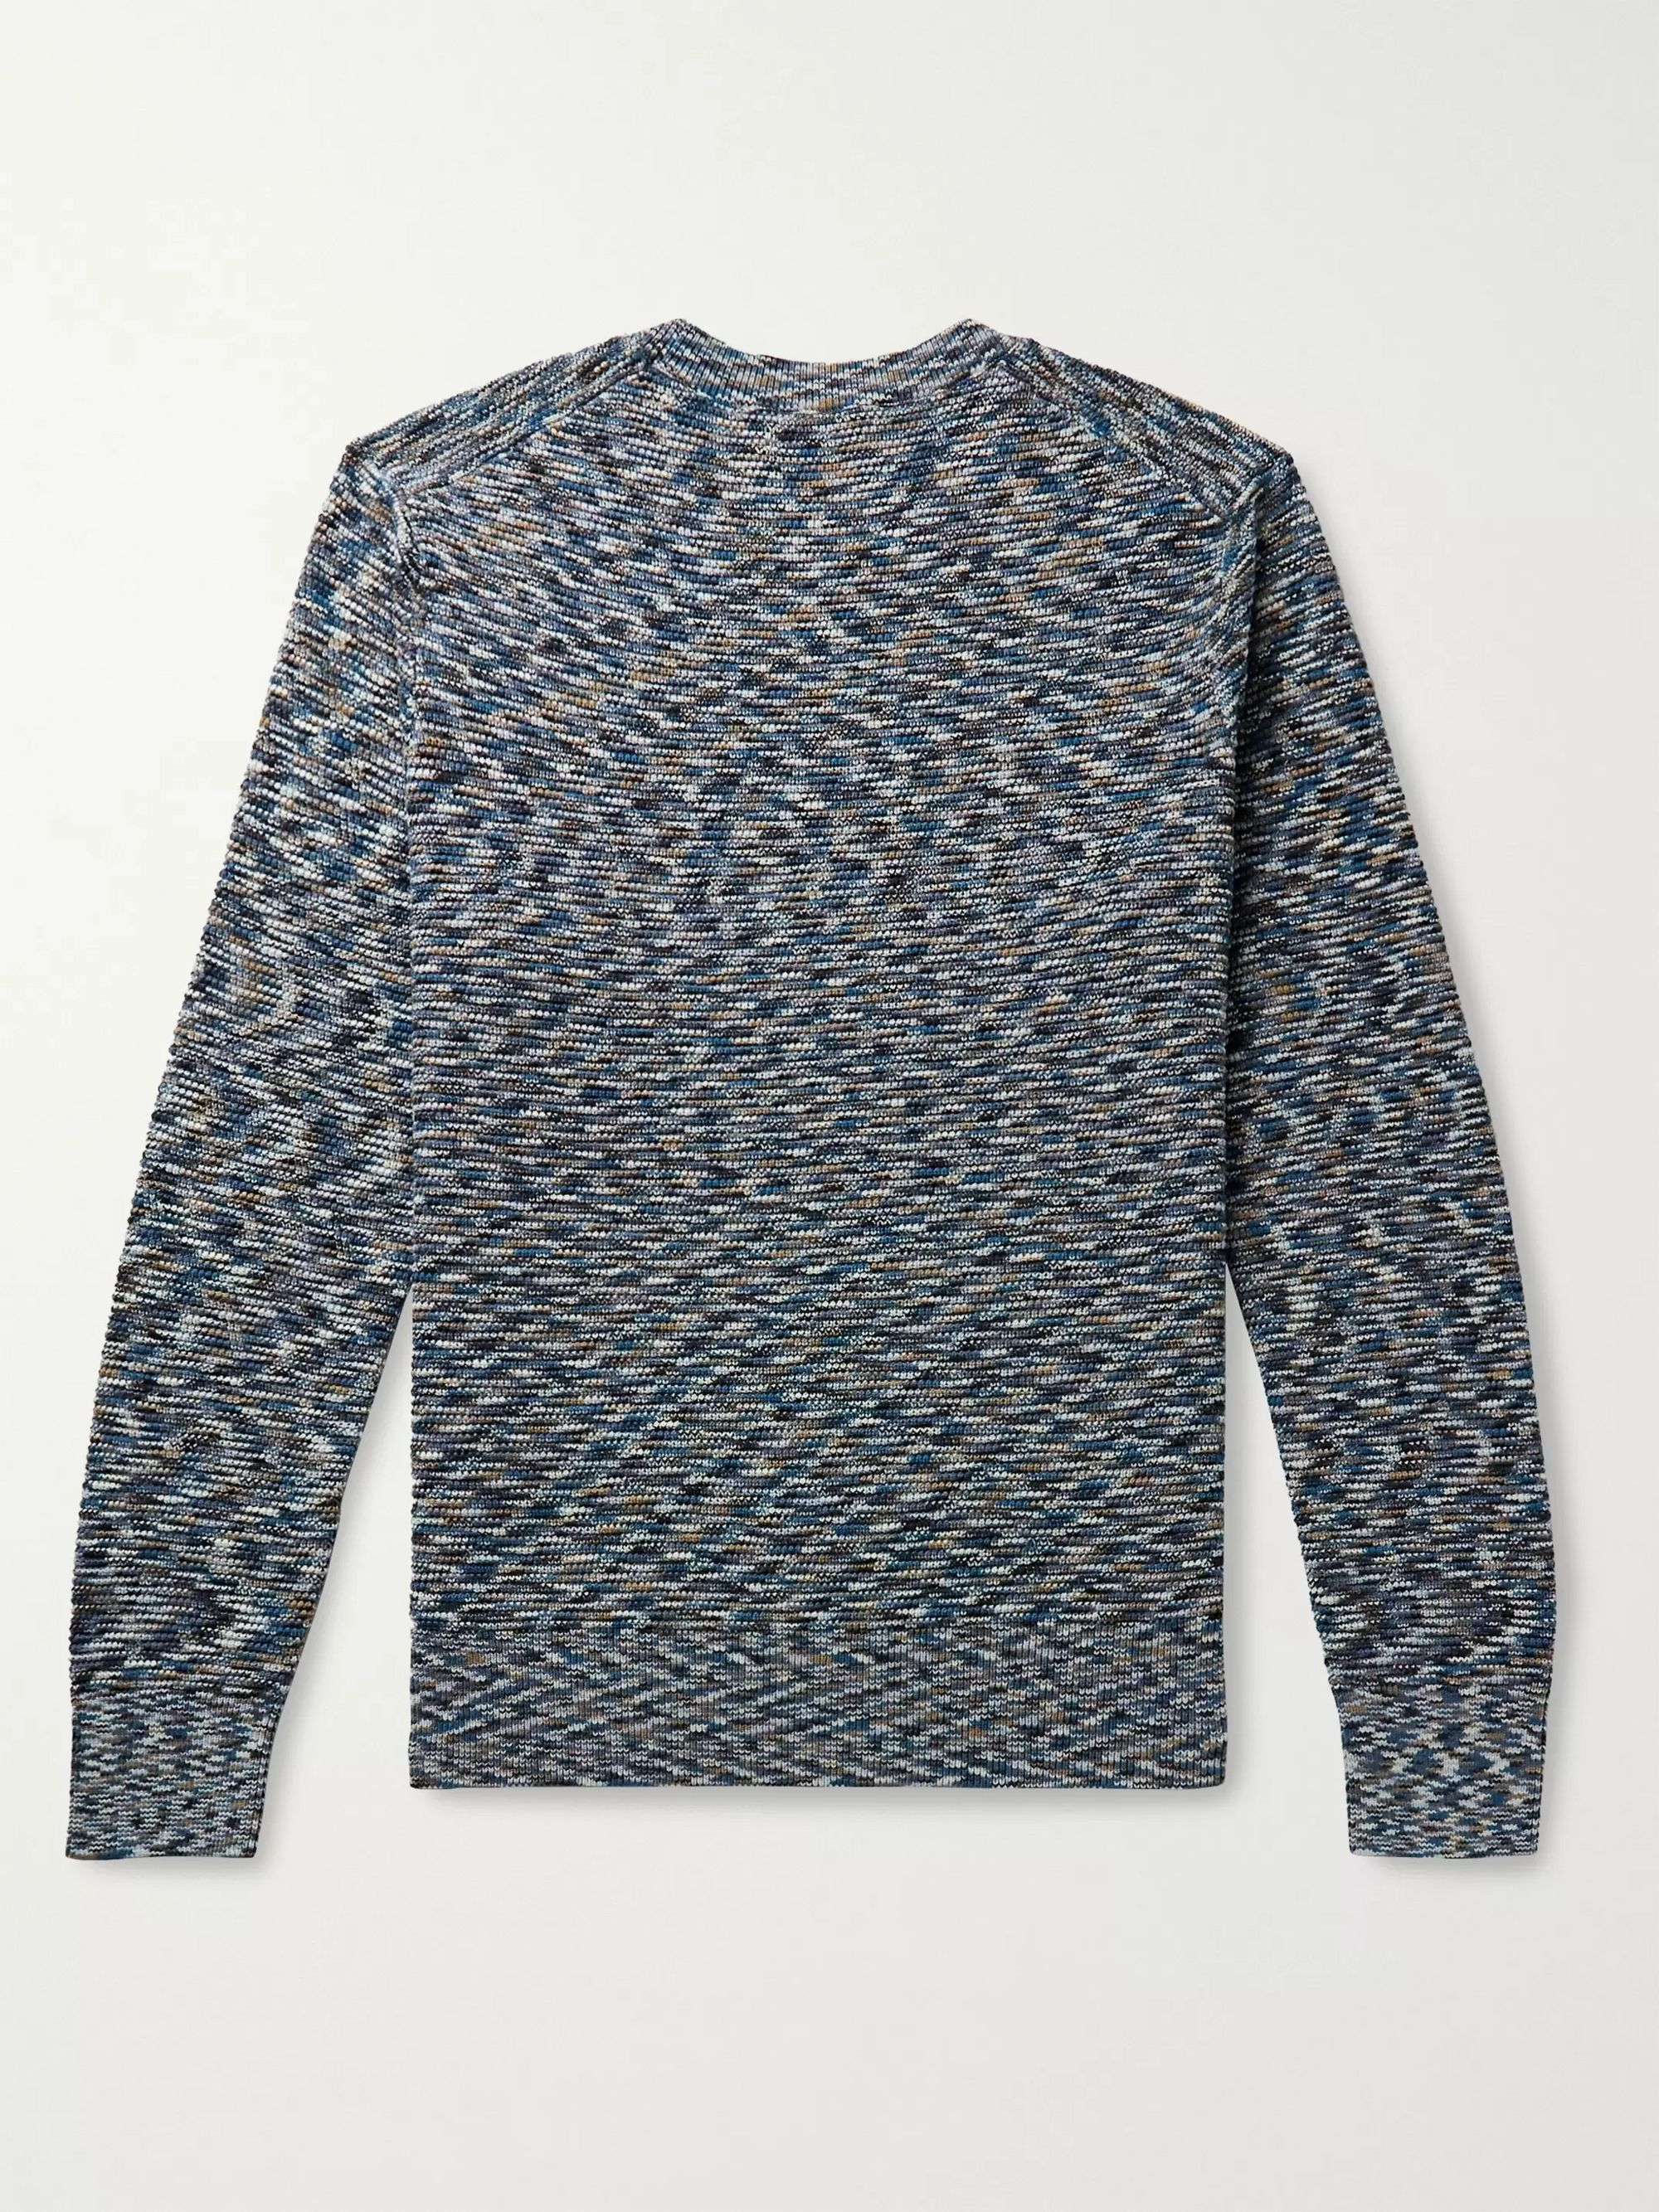 Club Monaco Space-Dyed Cotton Sweater